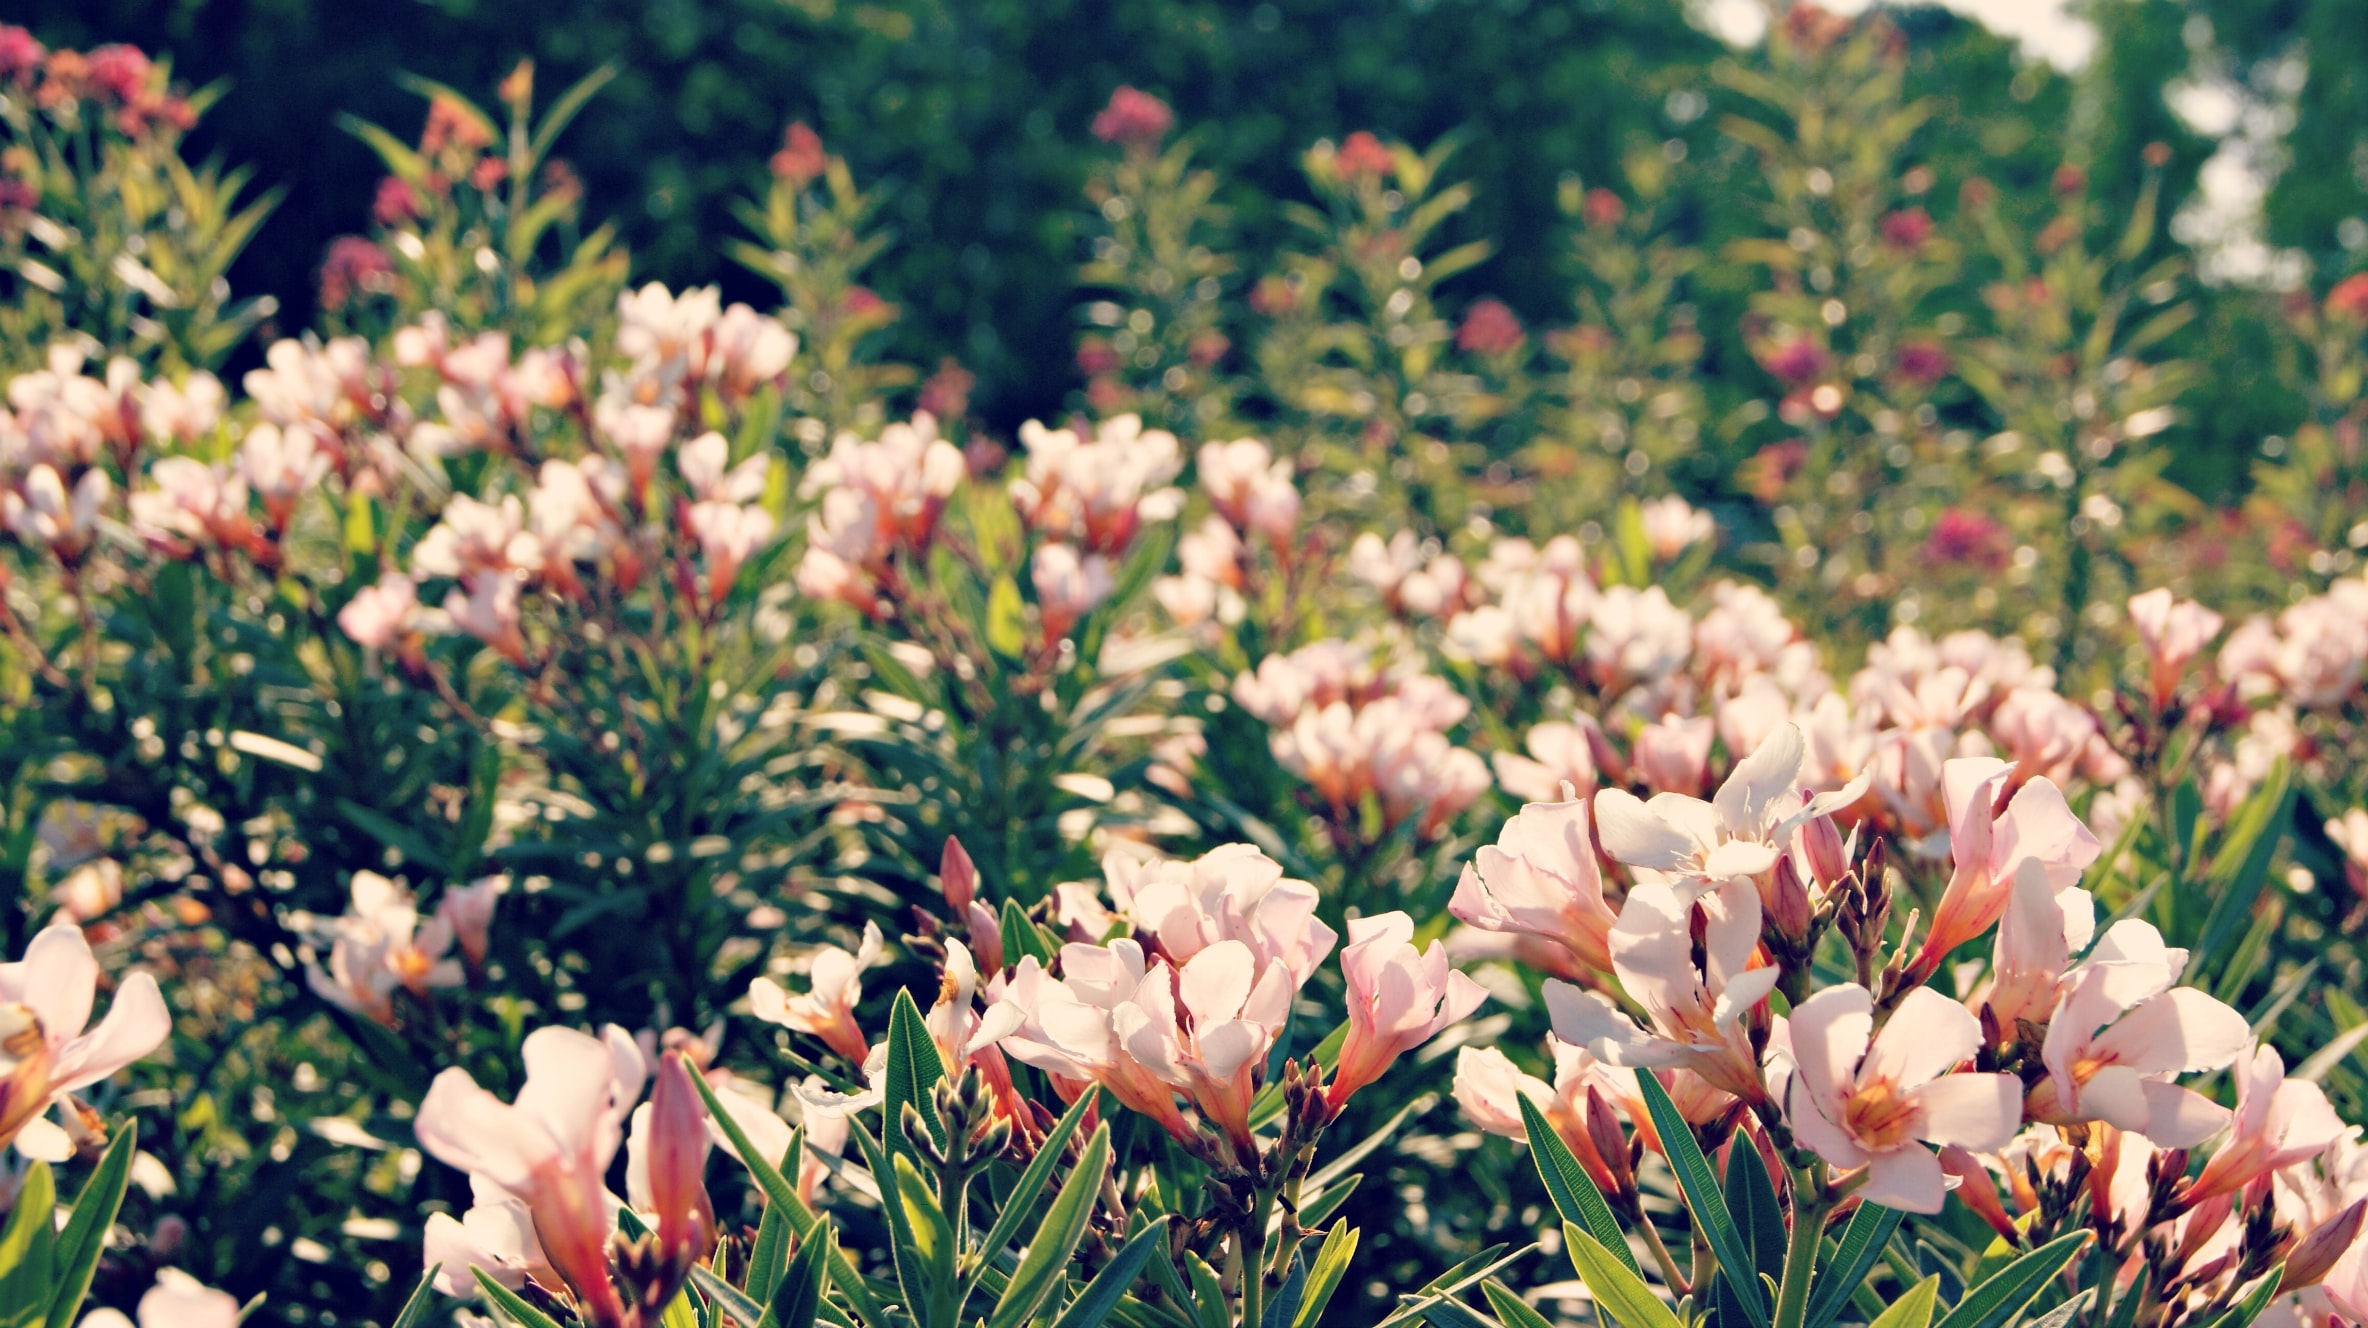 pink flowers blooming during daytime